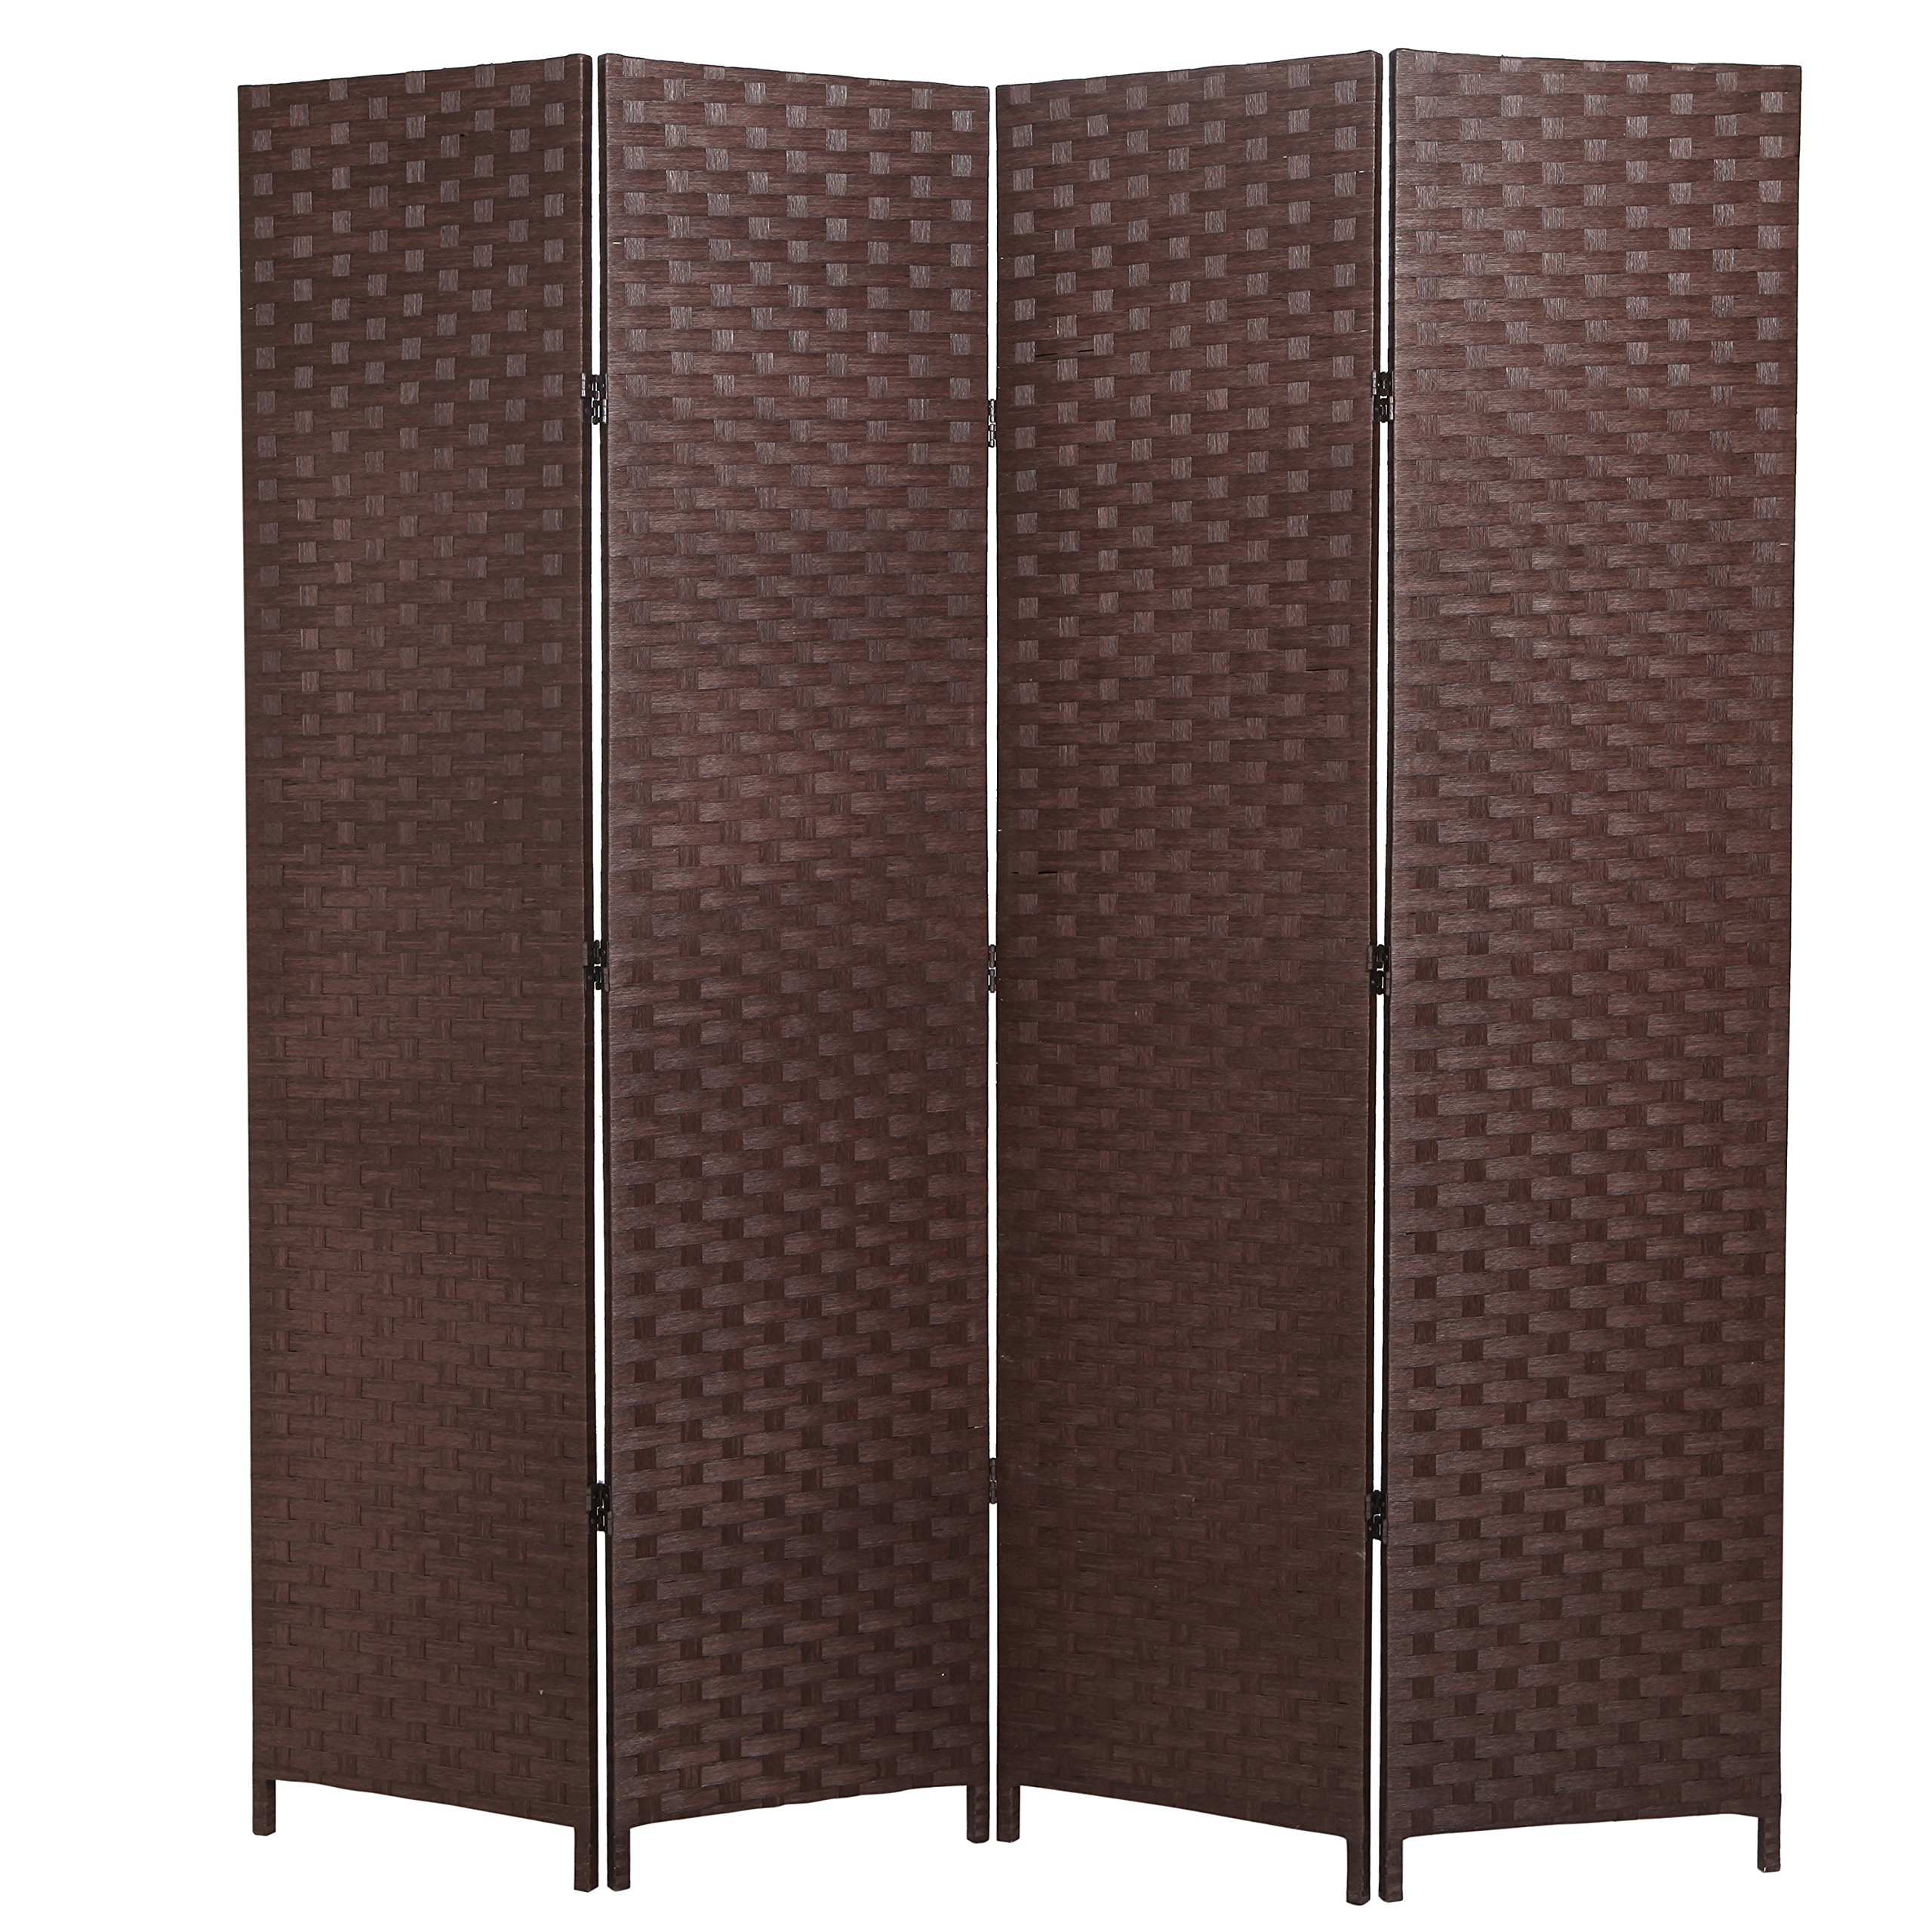 MyGift Wood 4-Panel Room Divider, Seagrass Woven Privacy Screen, Brown by MyGift